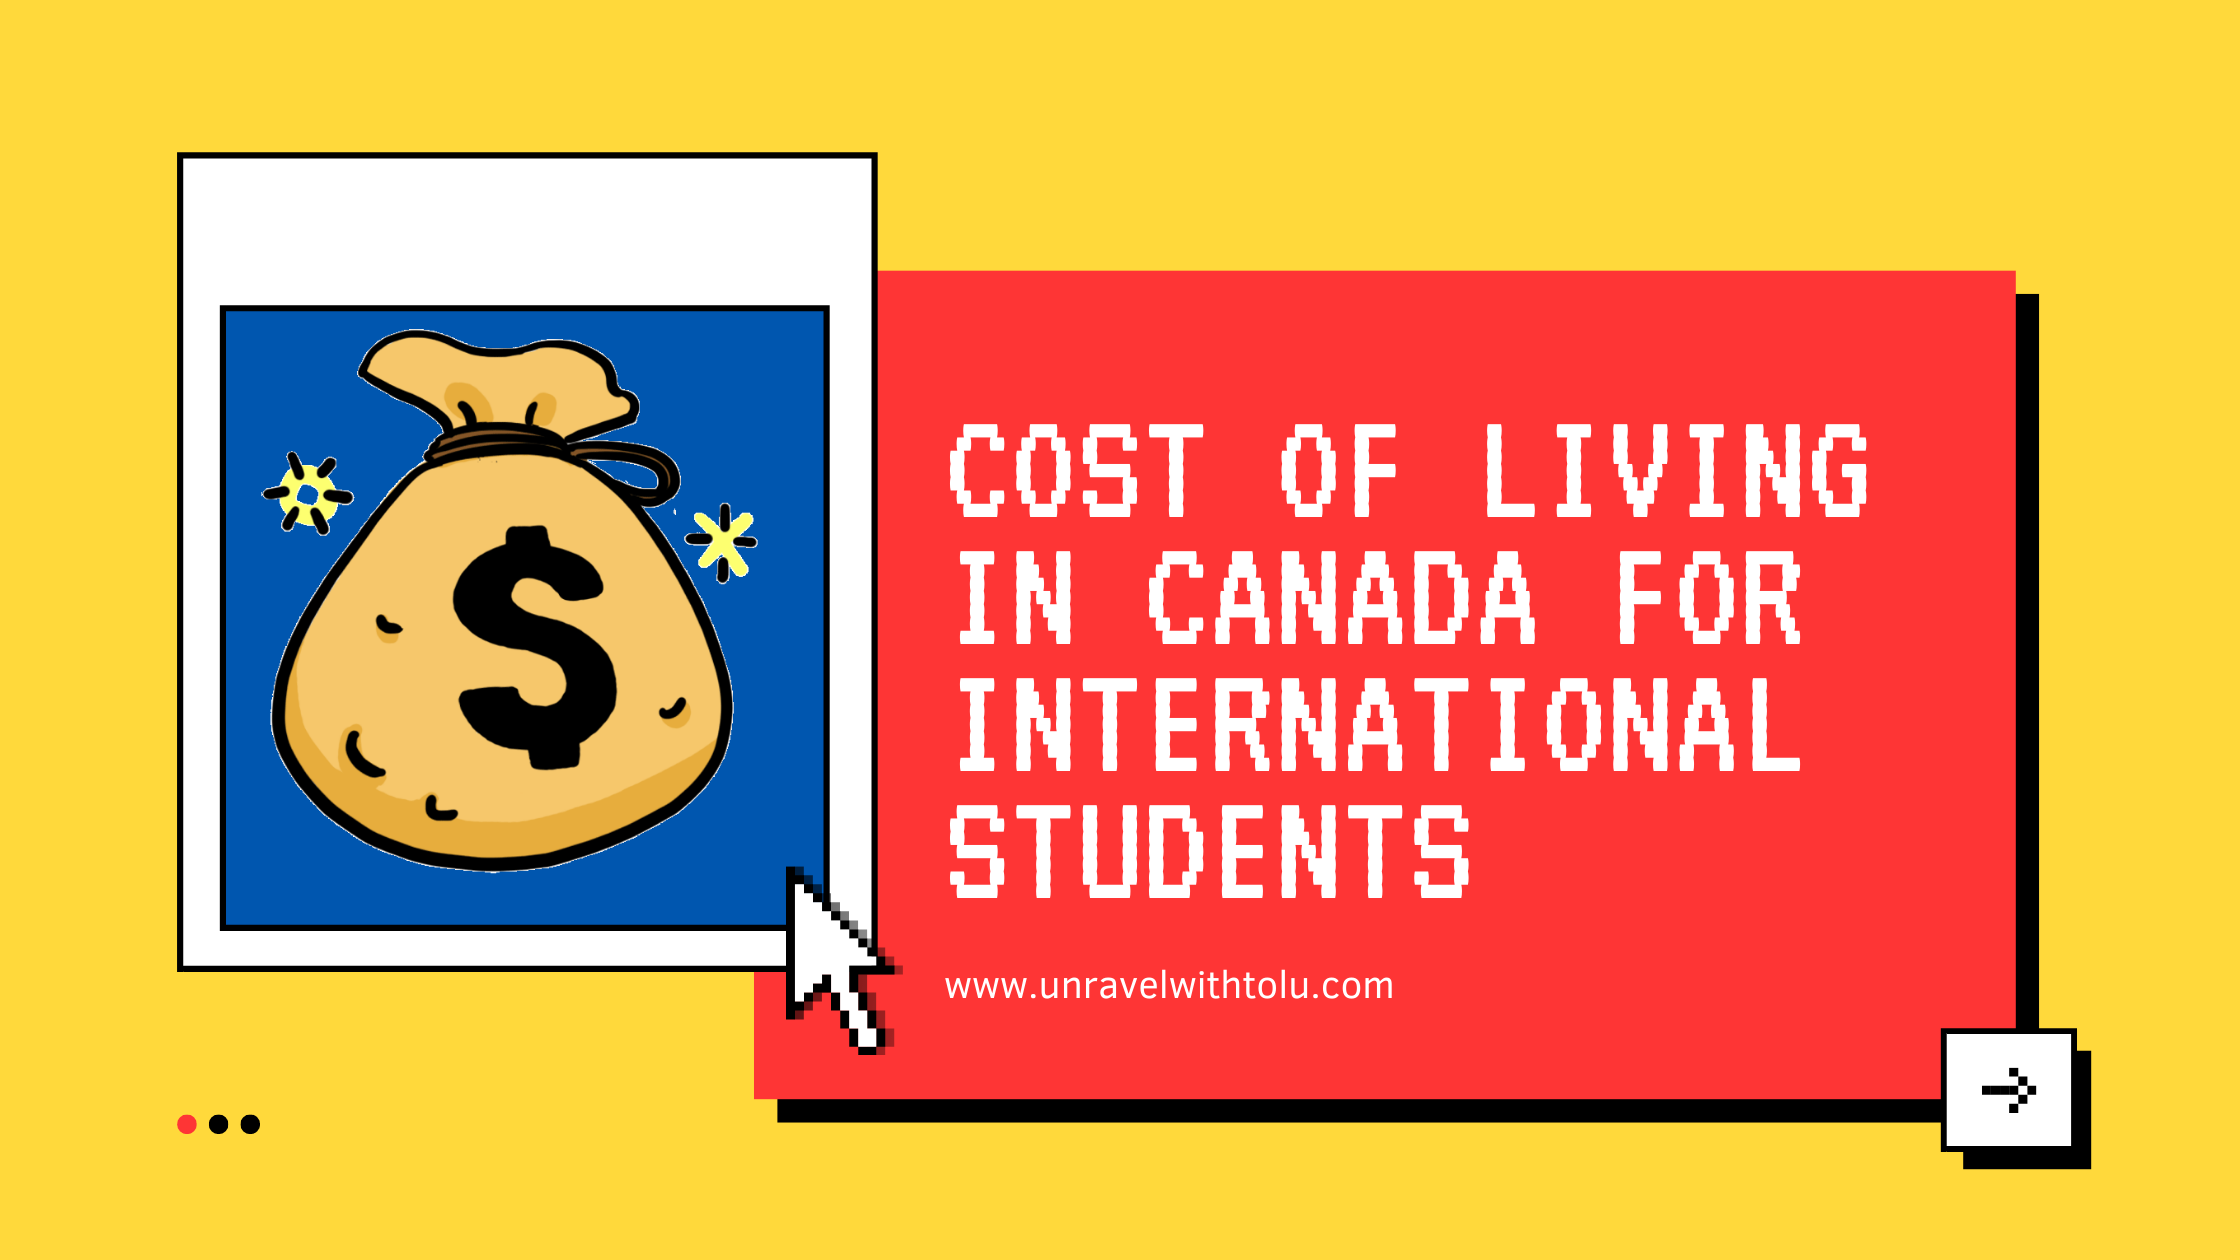 cost-of-living-in-canada-for-international-students